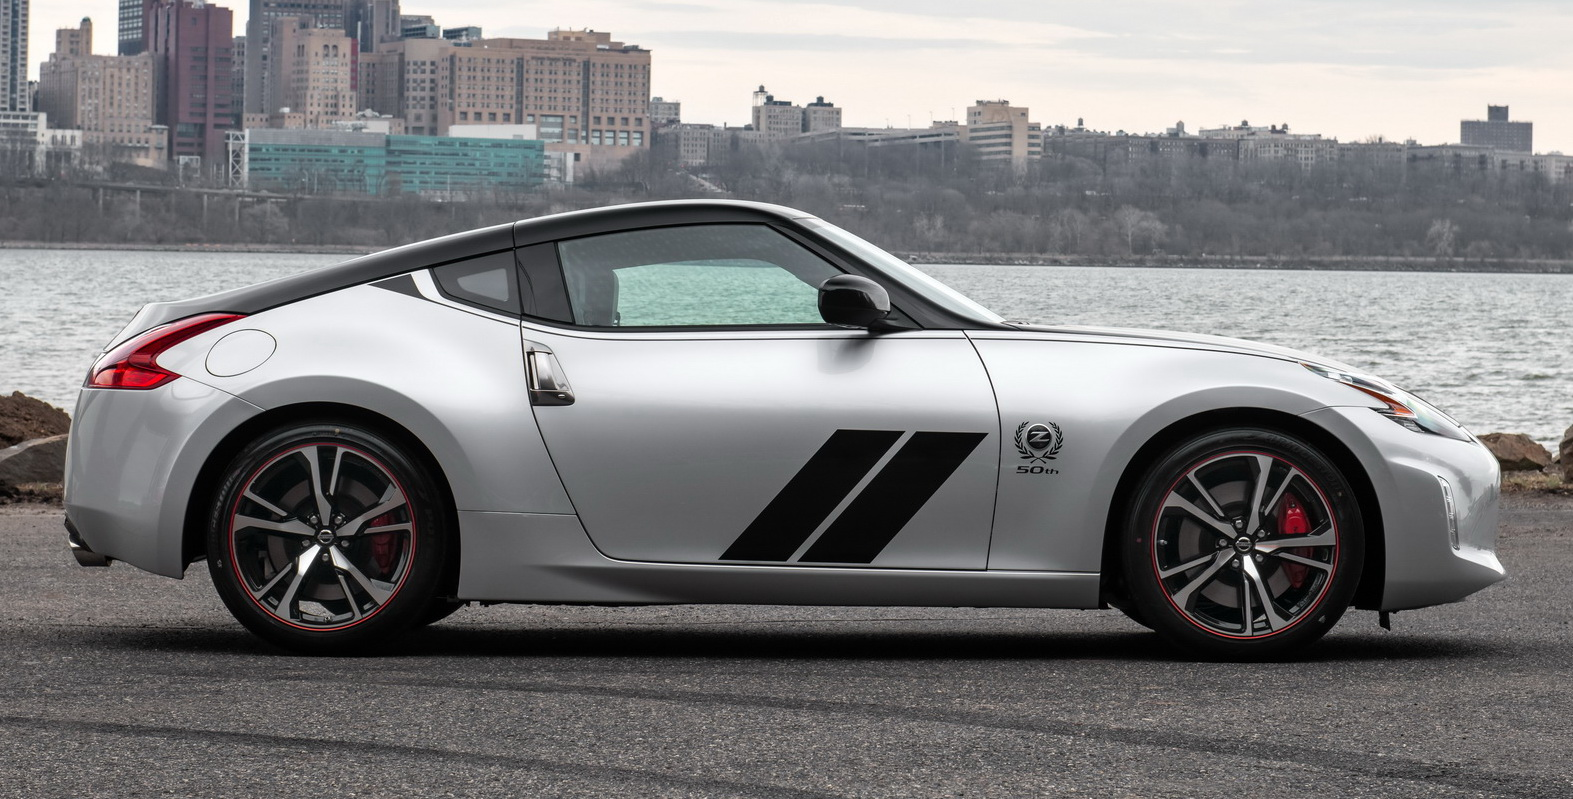 Nissan 370Z 50th Anniversary Edition Gets '70s-era 240Z Throwback Color Scheme